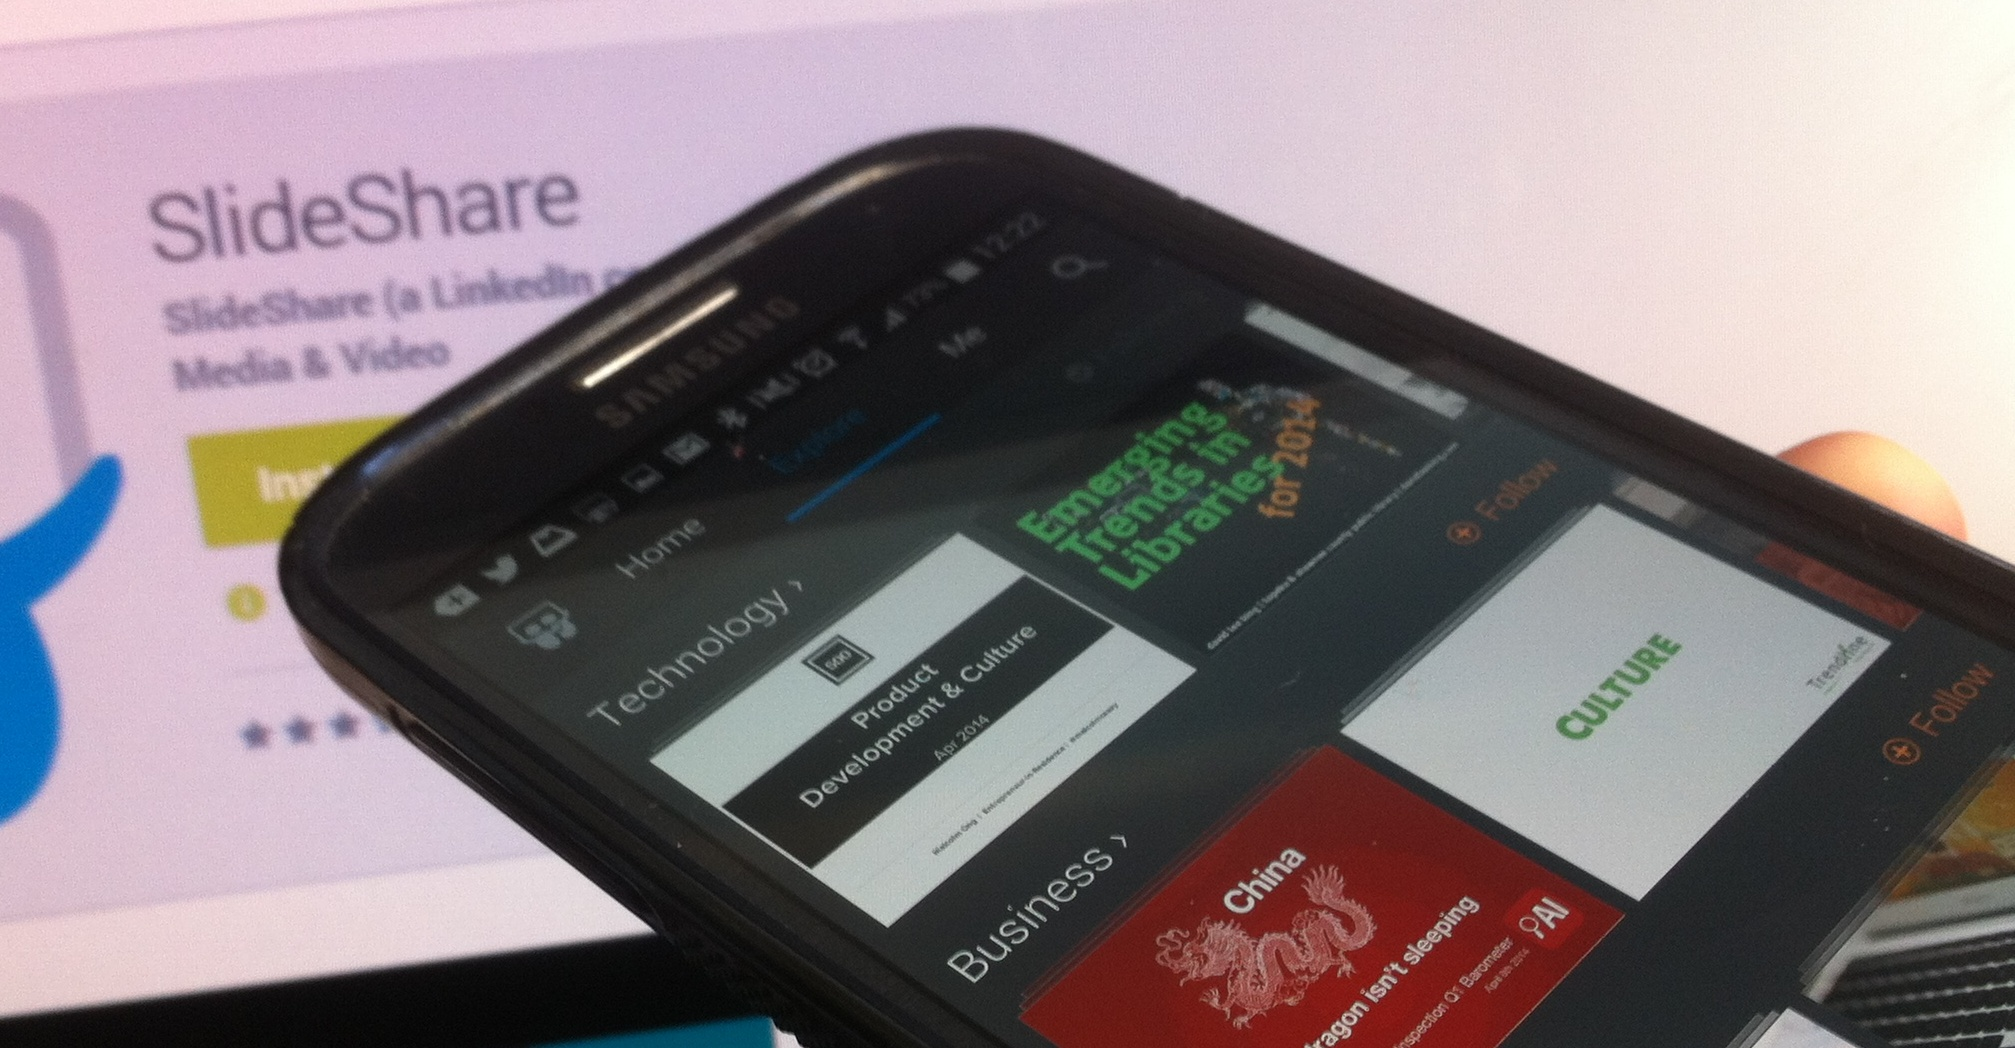 SlideShare for Android: Its First Mobile App